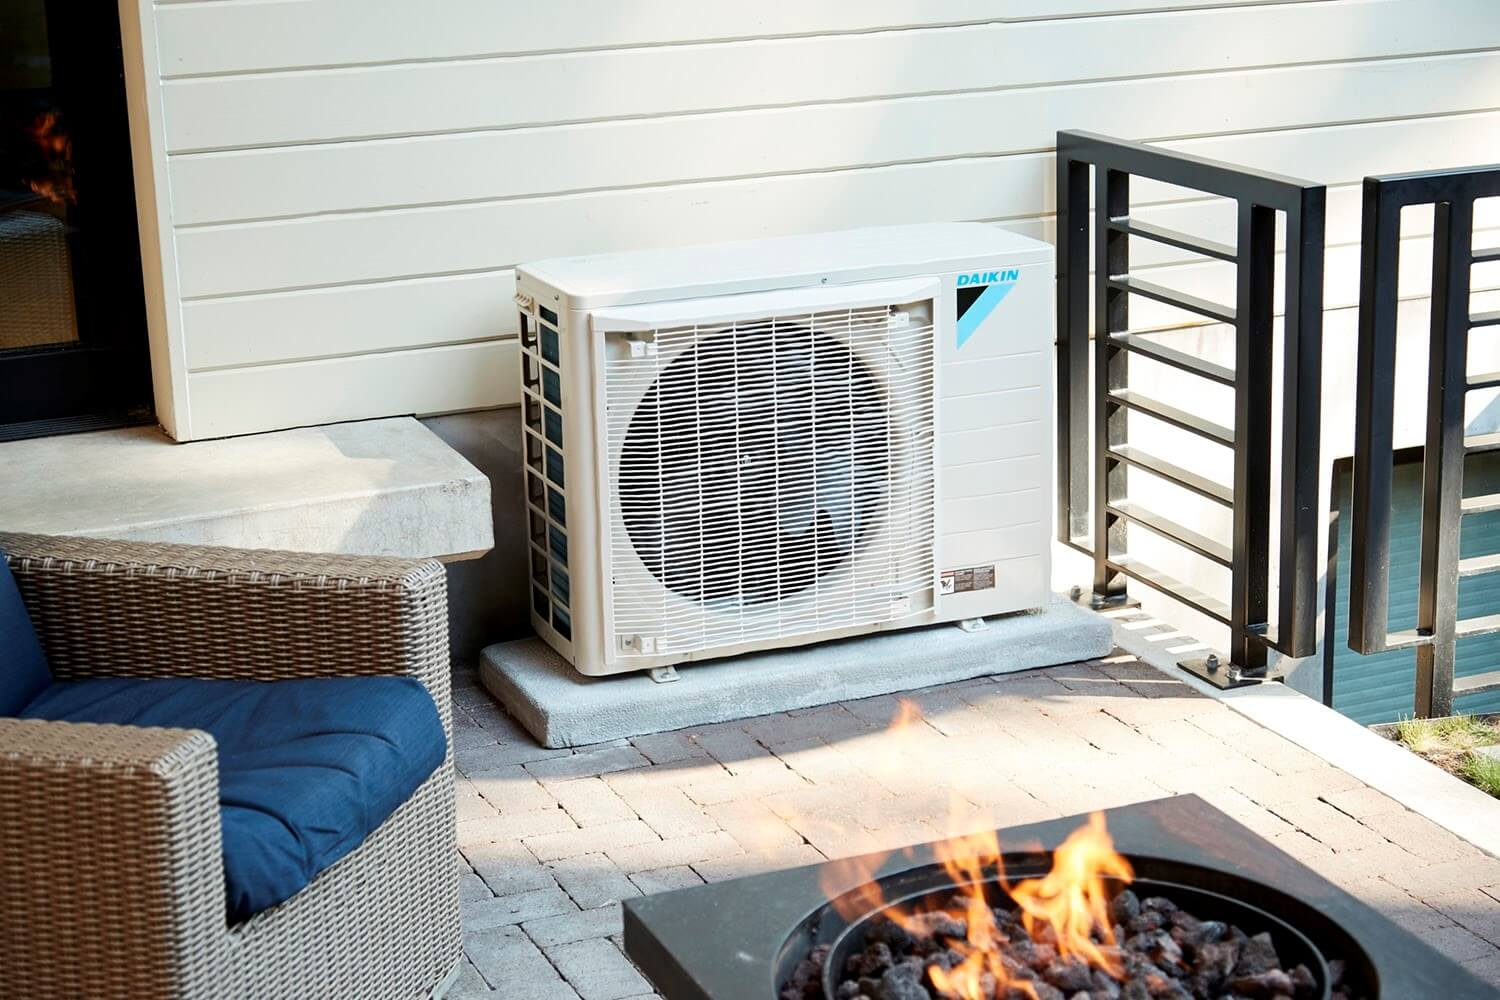 Enjoy Silent Air Conditioning Inside and Outdoors with Daikin Fit